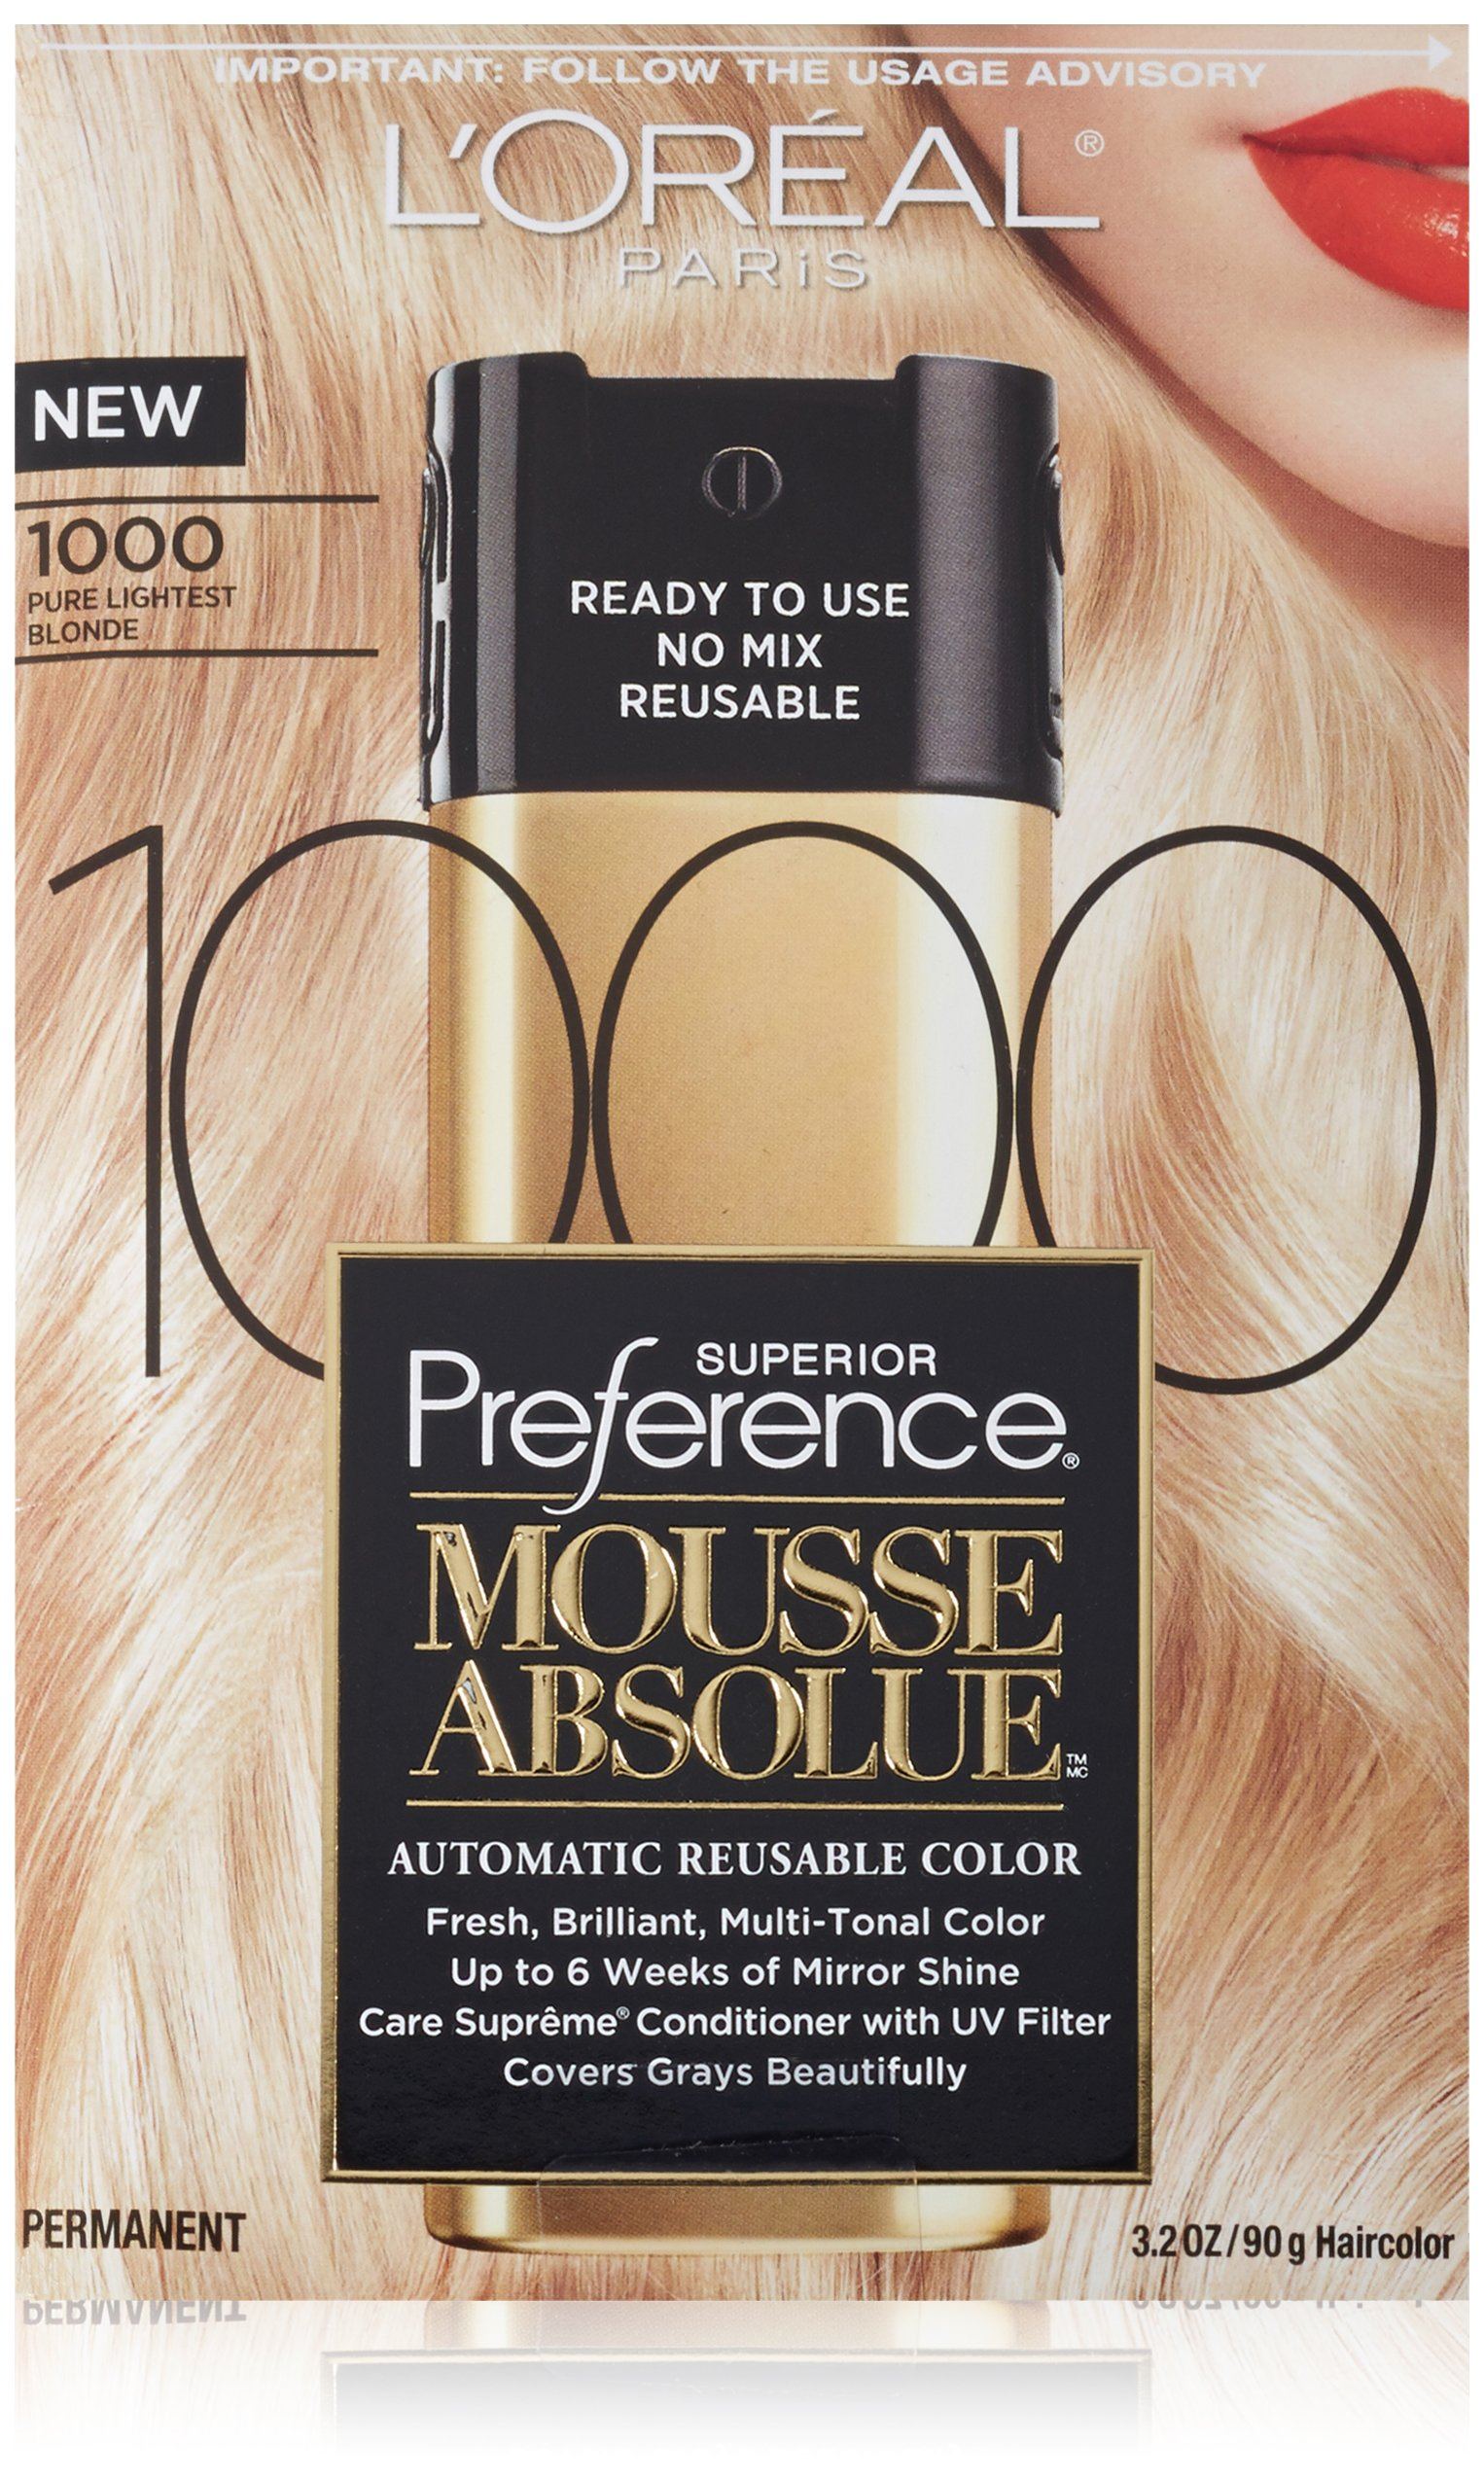 L'Oreal Paris Superior Preference Mousse Absolue, 1000 Pure Lightest Blonde